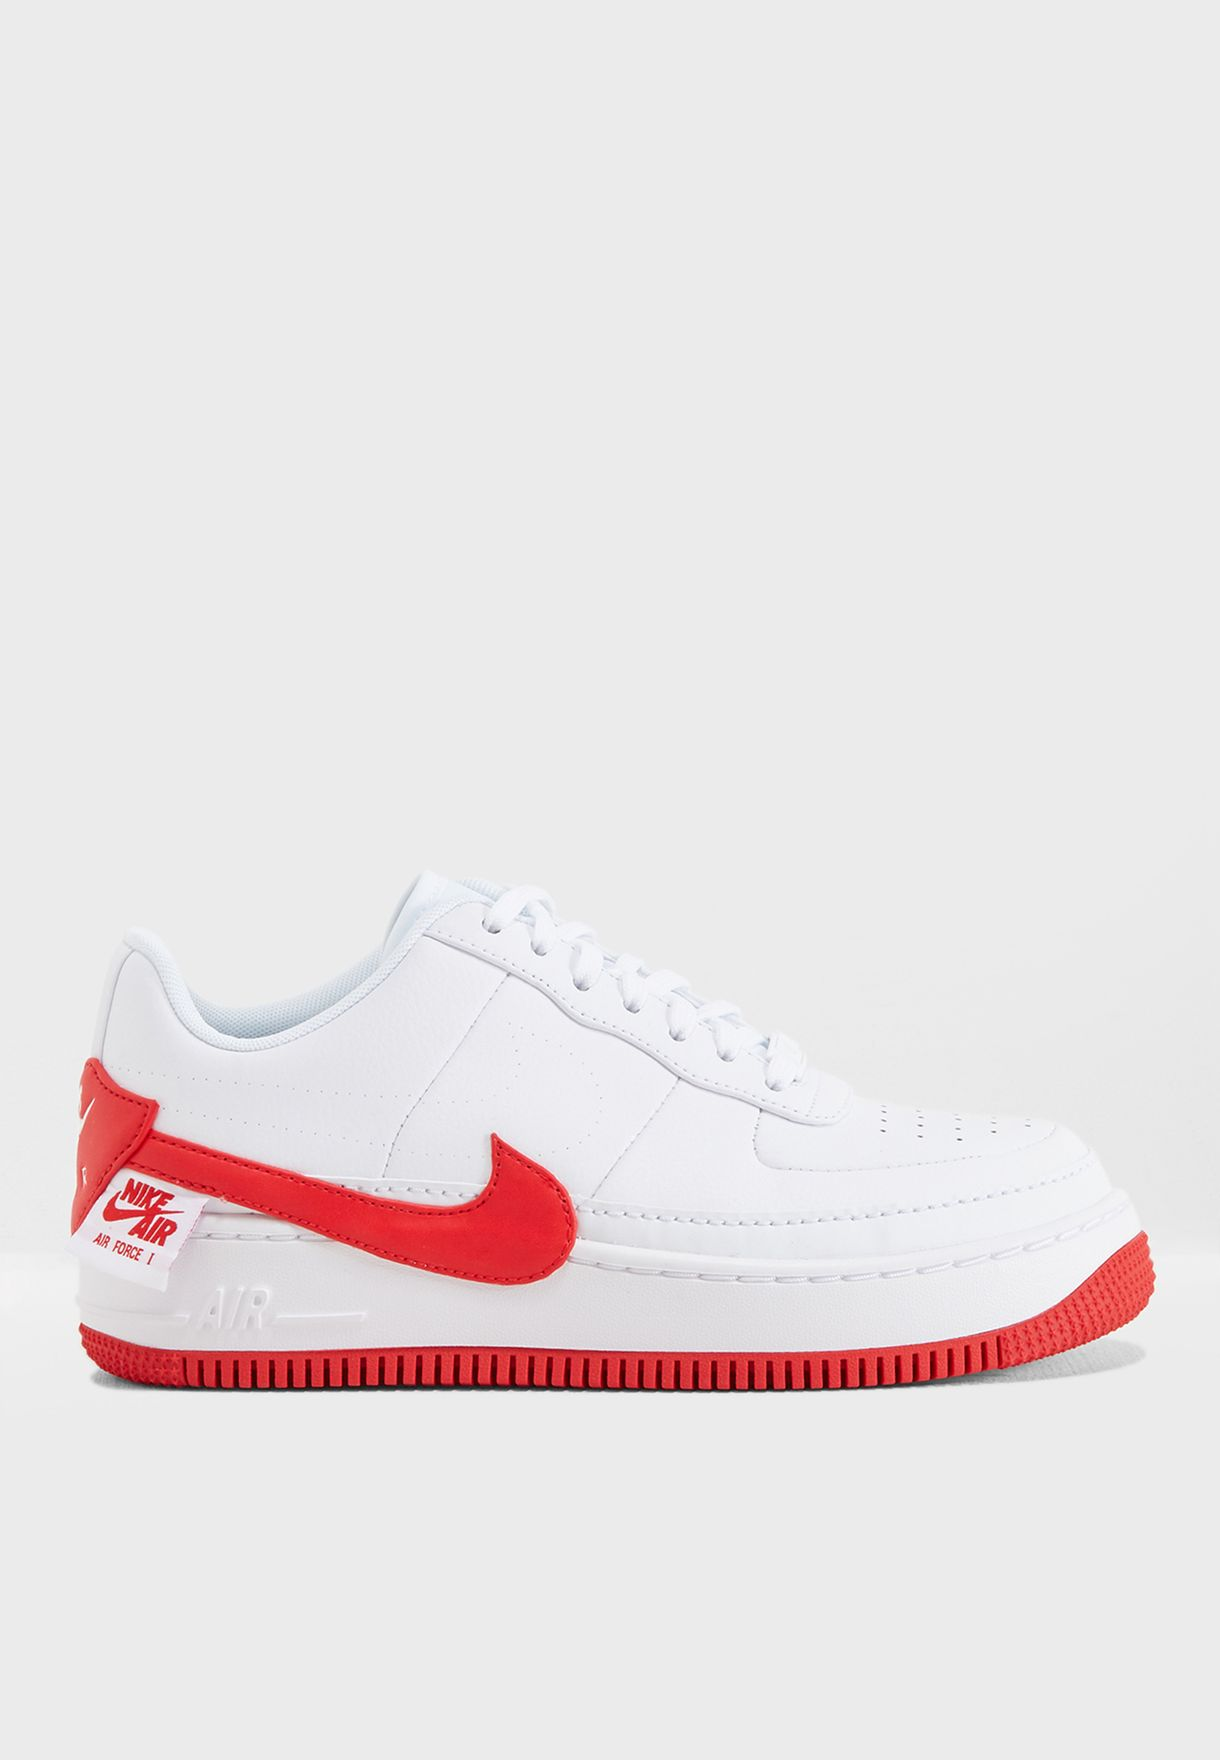 44712025a3d6 Shop Nike white Air Force 1 Jester XX AO1220-106 for Women in UAE ...